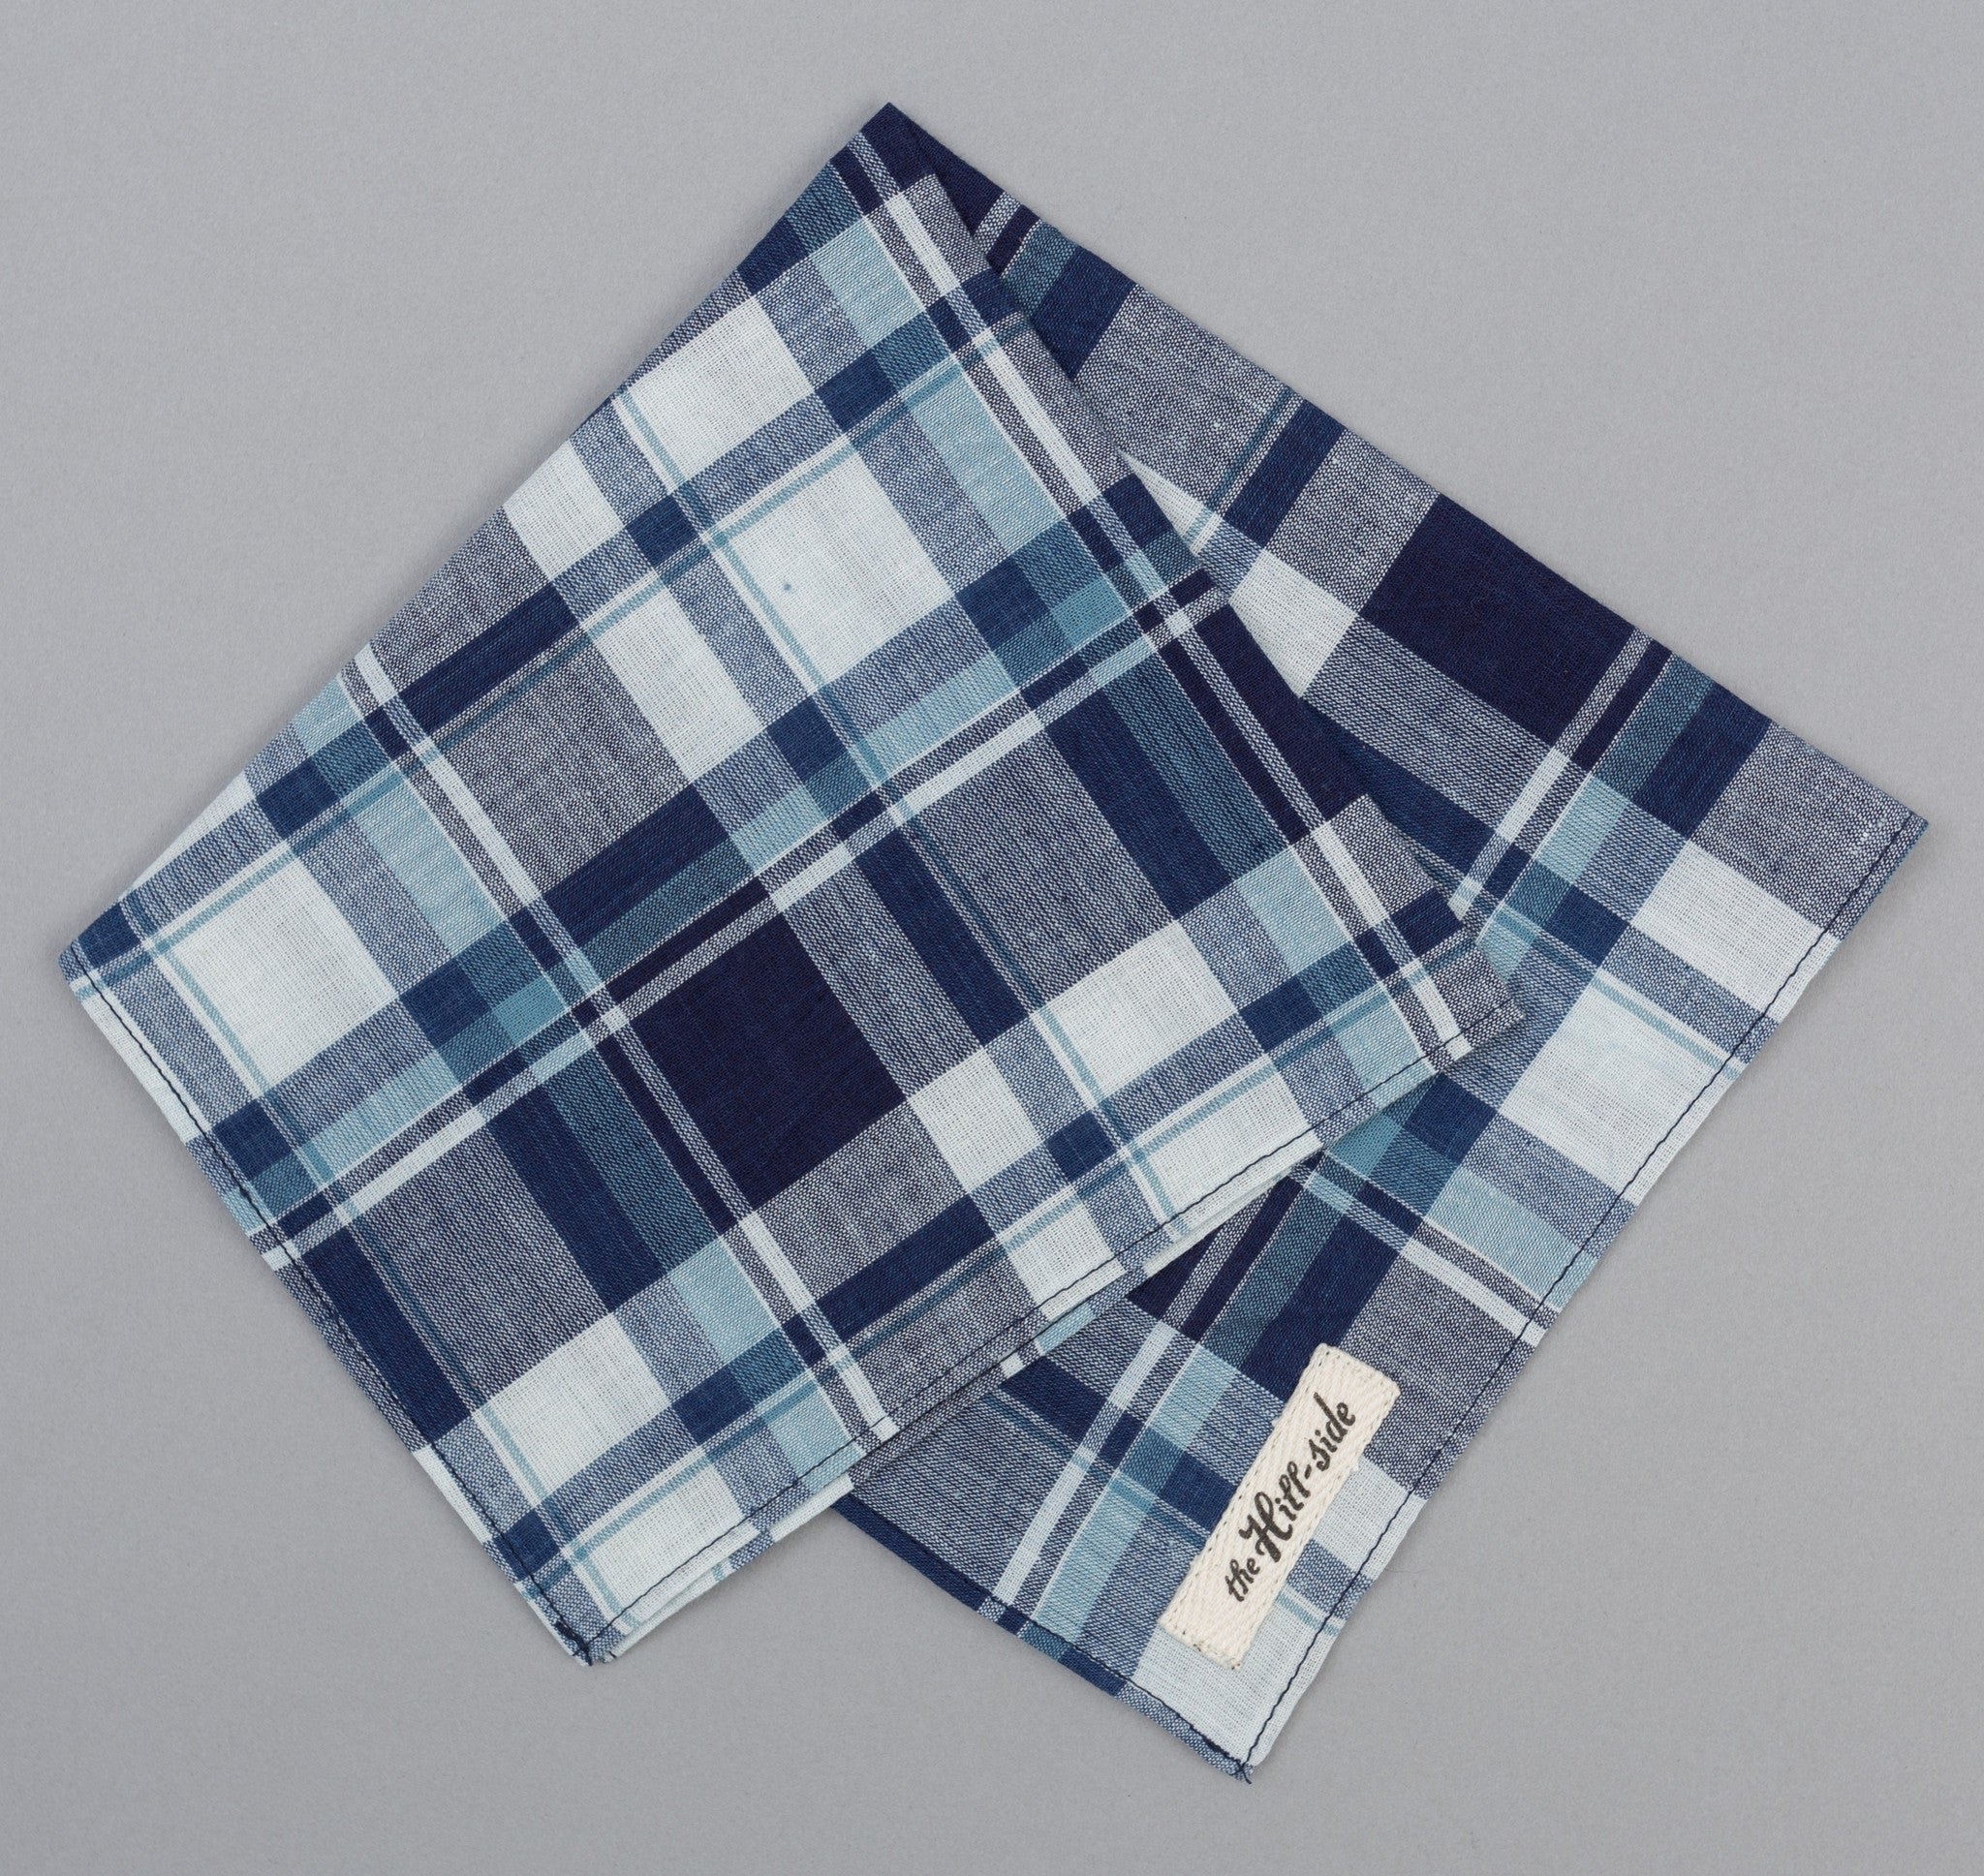 The Hill-Side - Selvedge Indigo Madras Large Check Pocket Square, Natural Base - PS1-333 - image 1